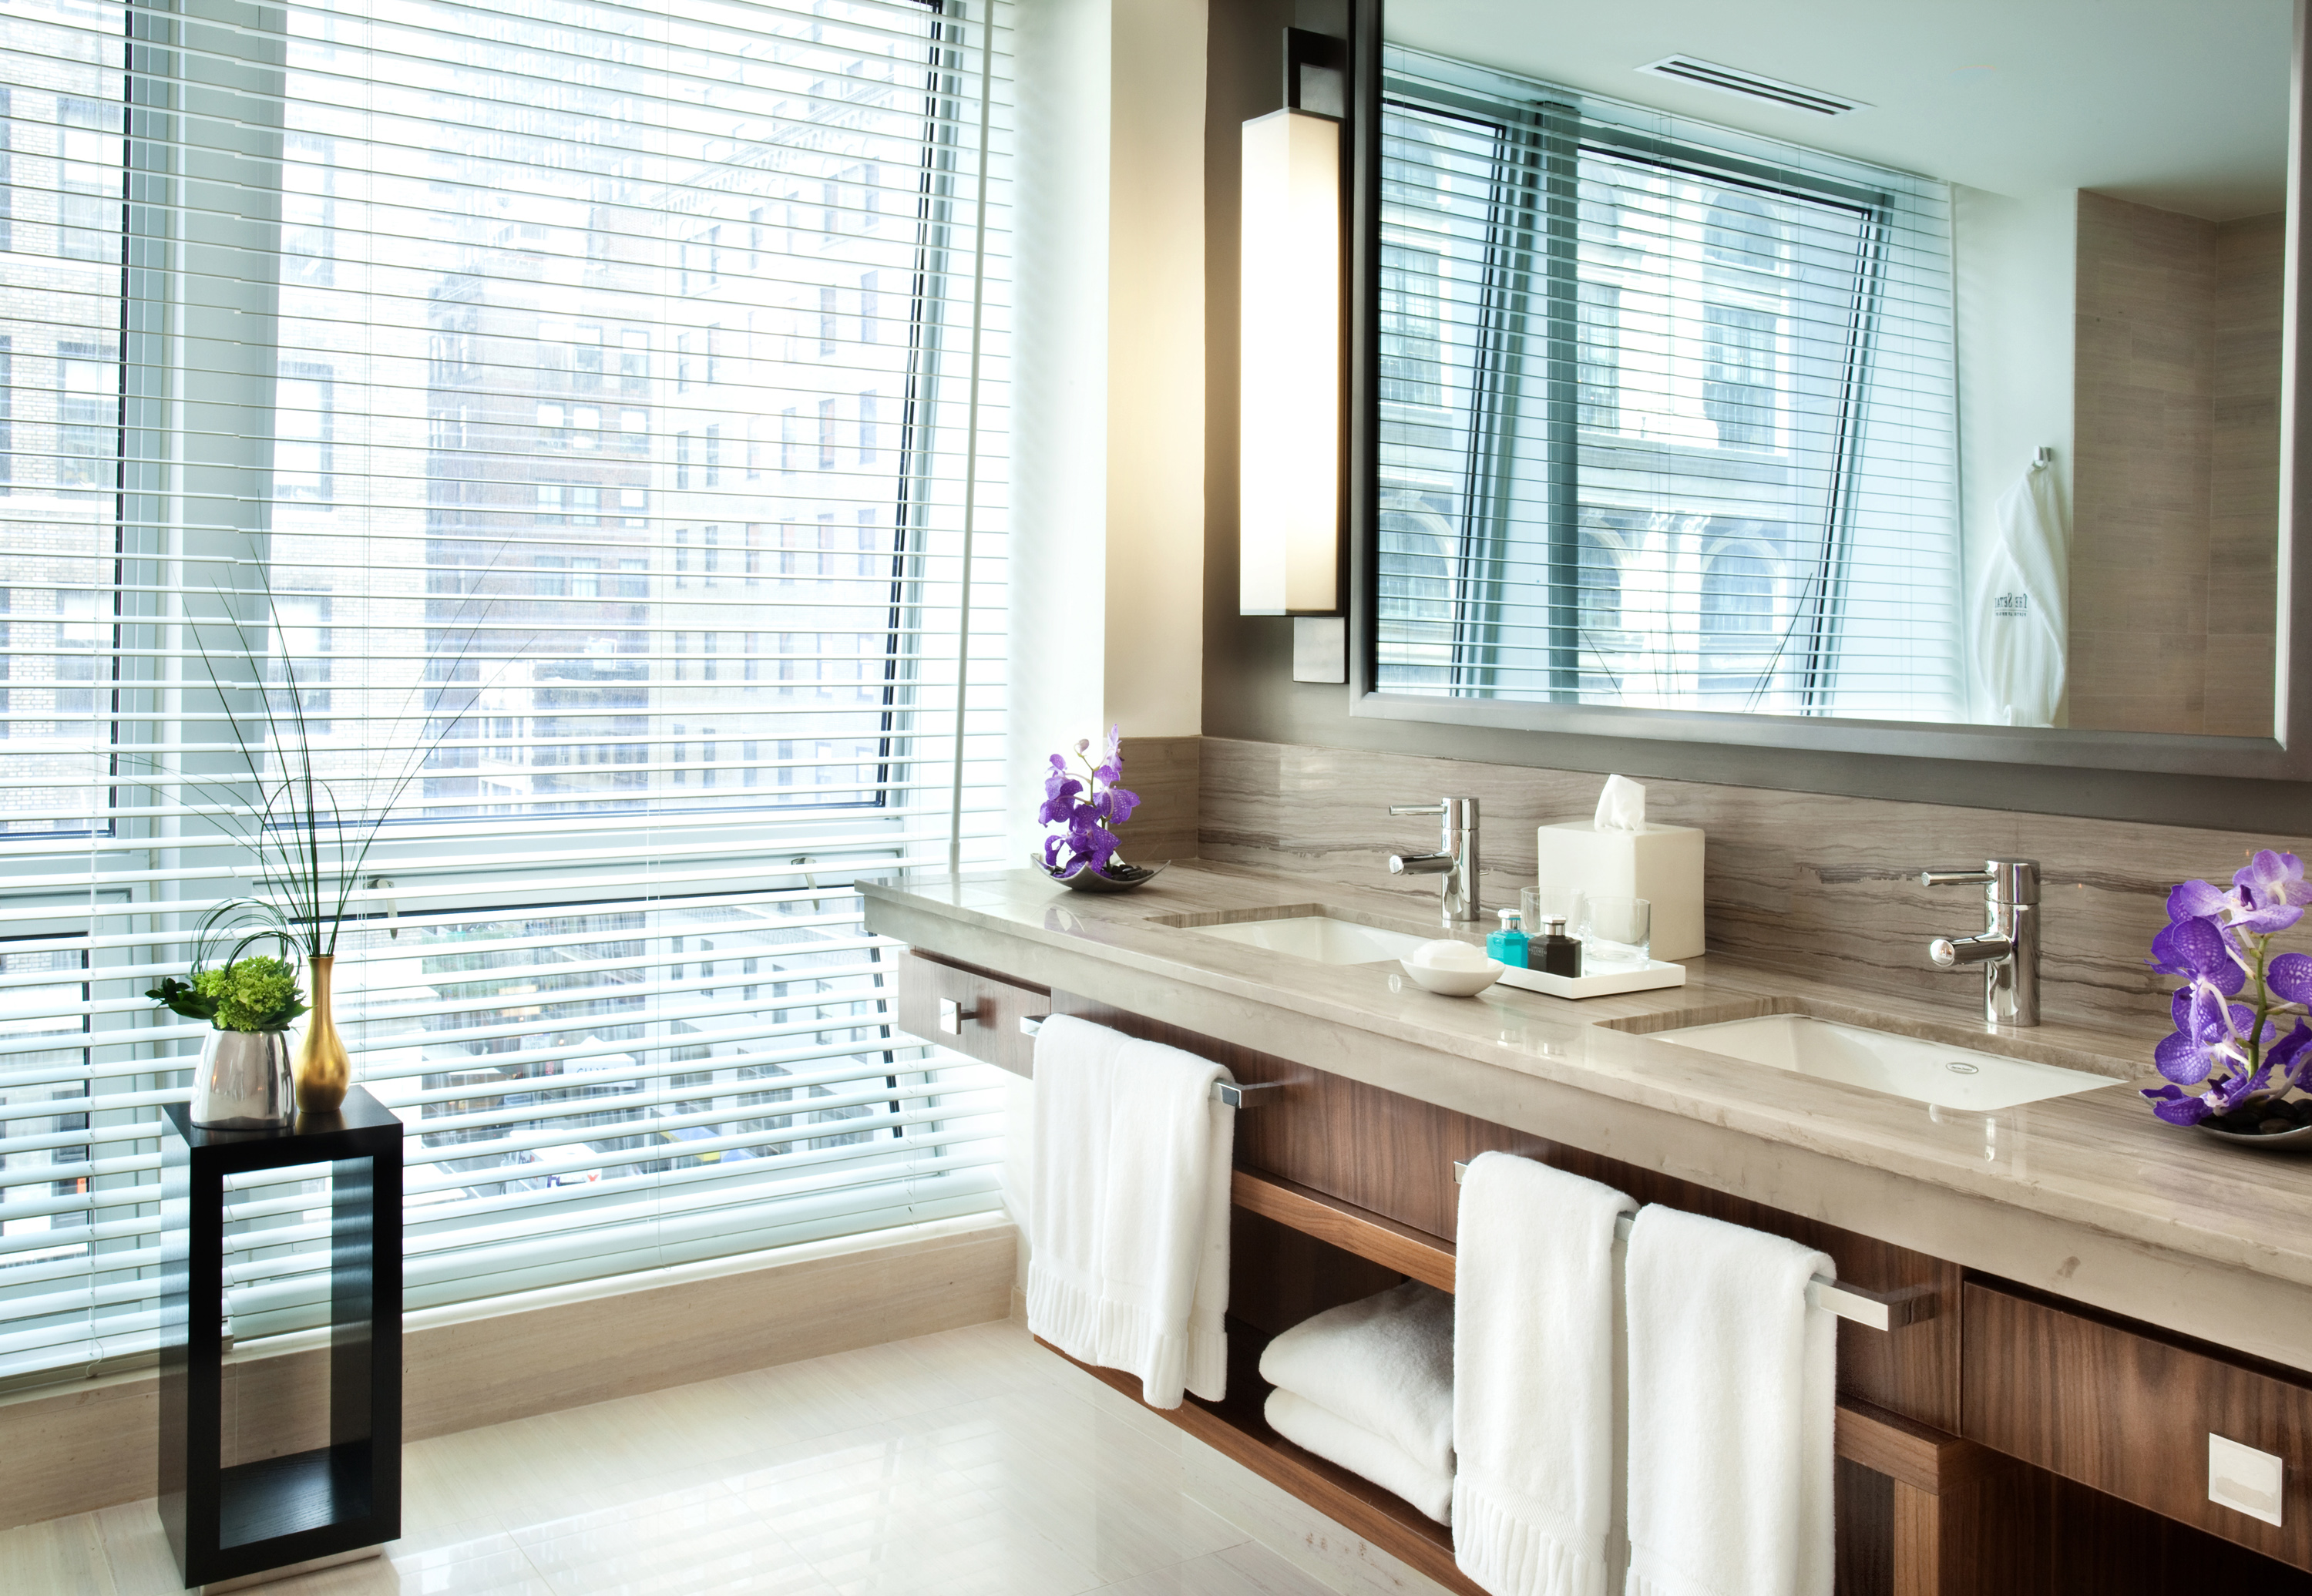 A Bathroom in The Setai Fifth Avenue Hotel guest room.